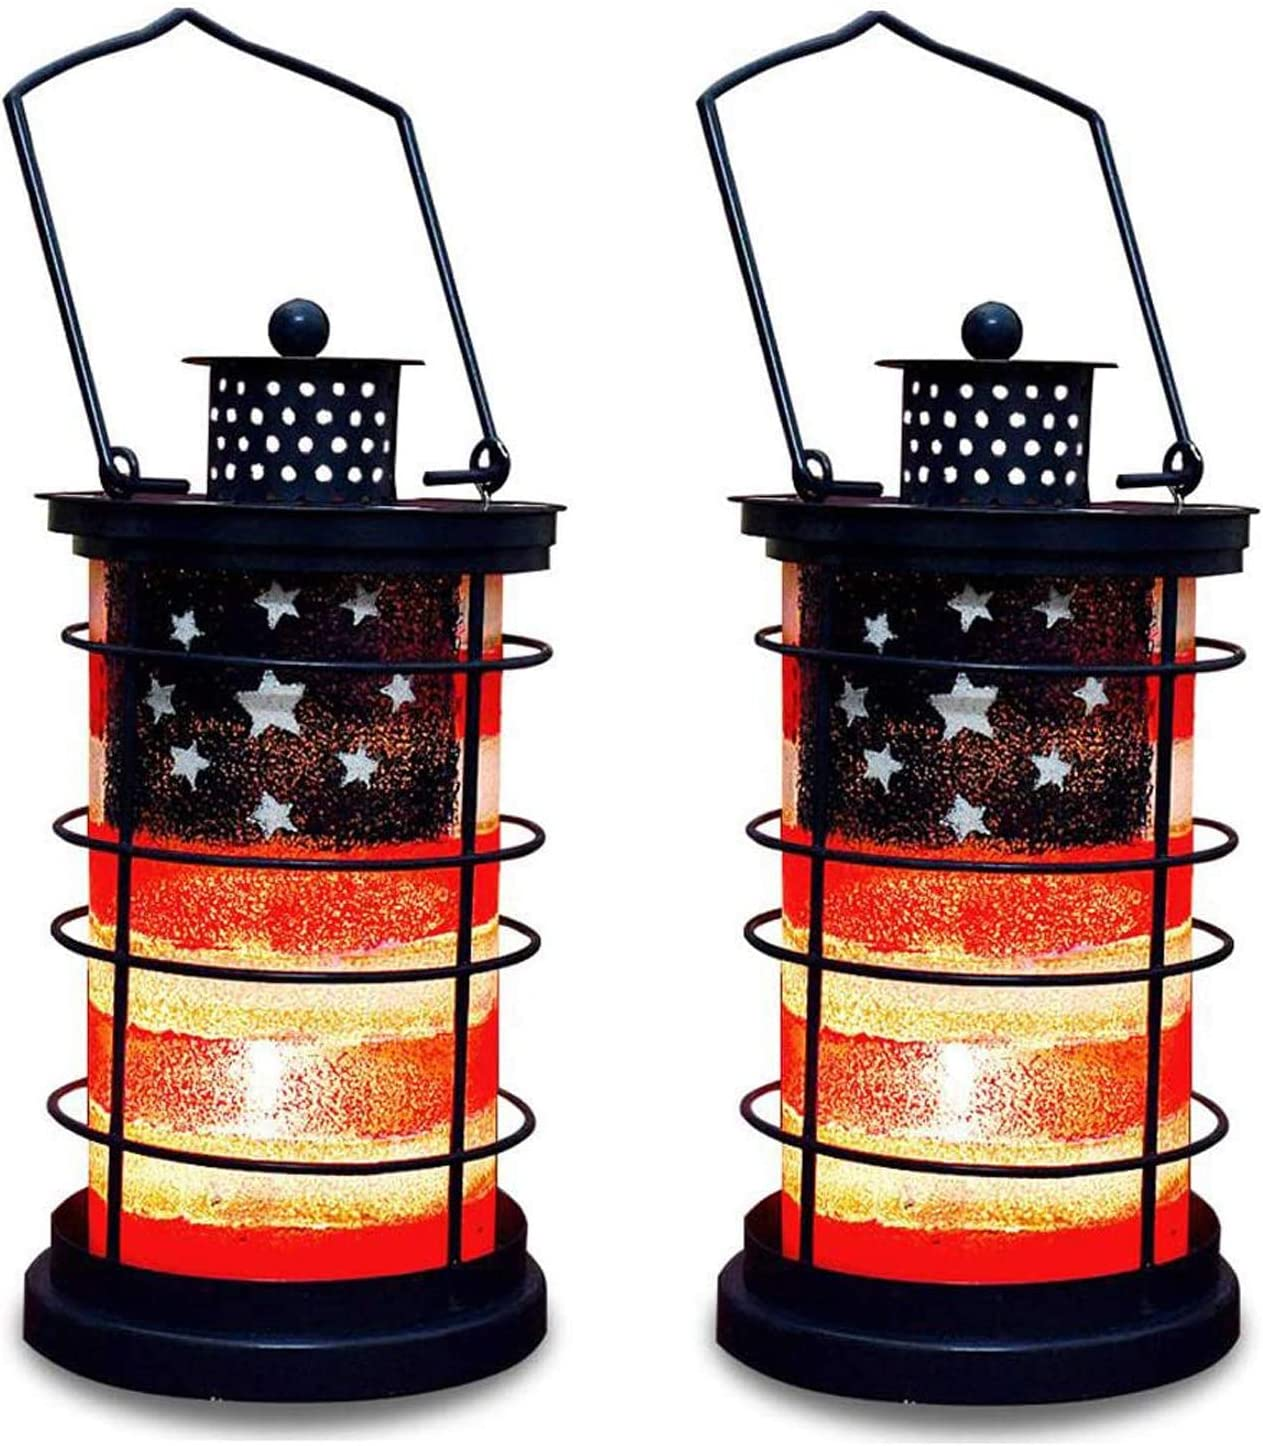 Patriotic Decorative Lantern Metal and Glass Candle Holder for July 4th Home Decor - Rustic Garden Decoration Indoor Outdoor Tea Light Holder Hanging Lanterns for Party (2)